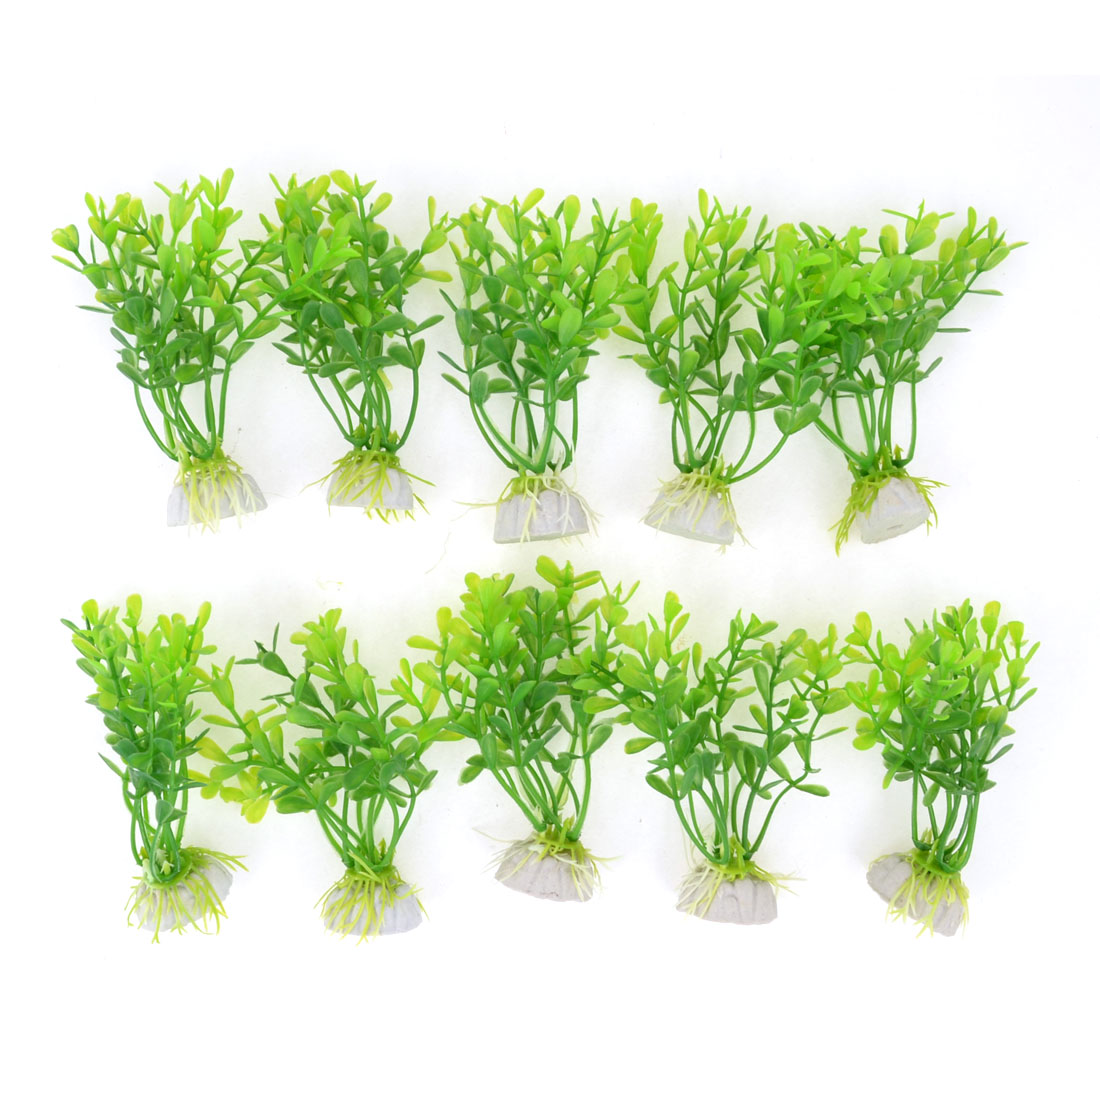 10pcs Green Aquarium Landscaping Simulated Aquatic Plant Decor 4.1""